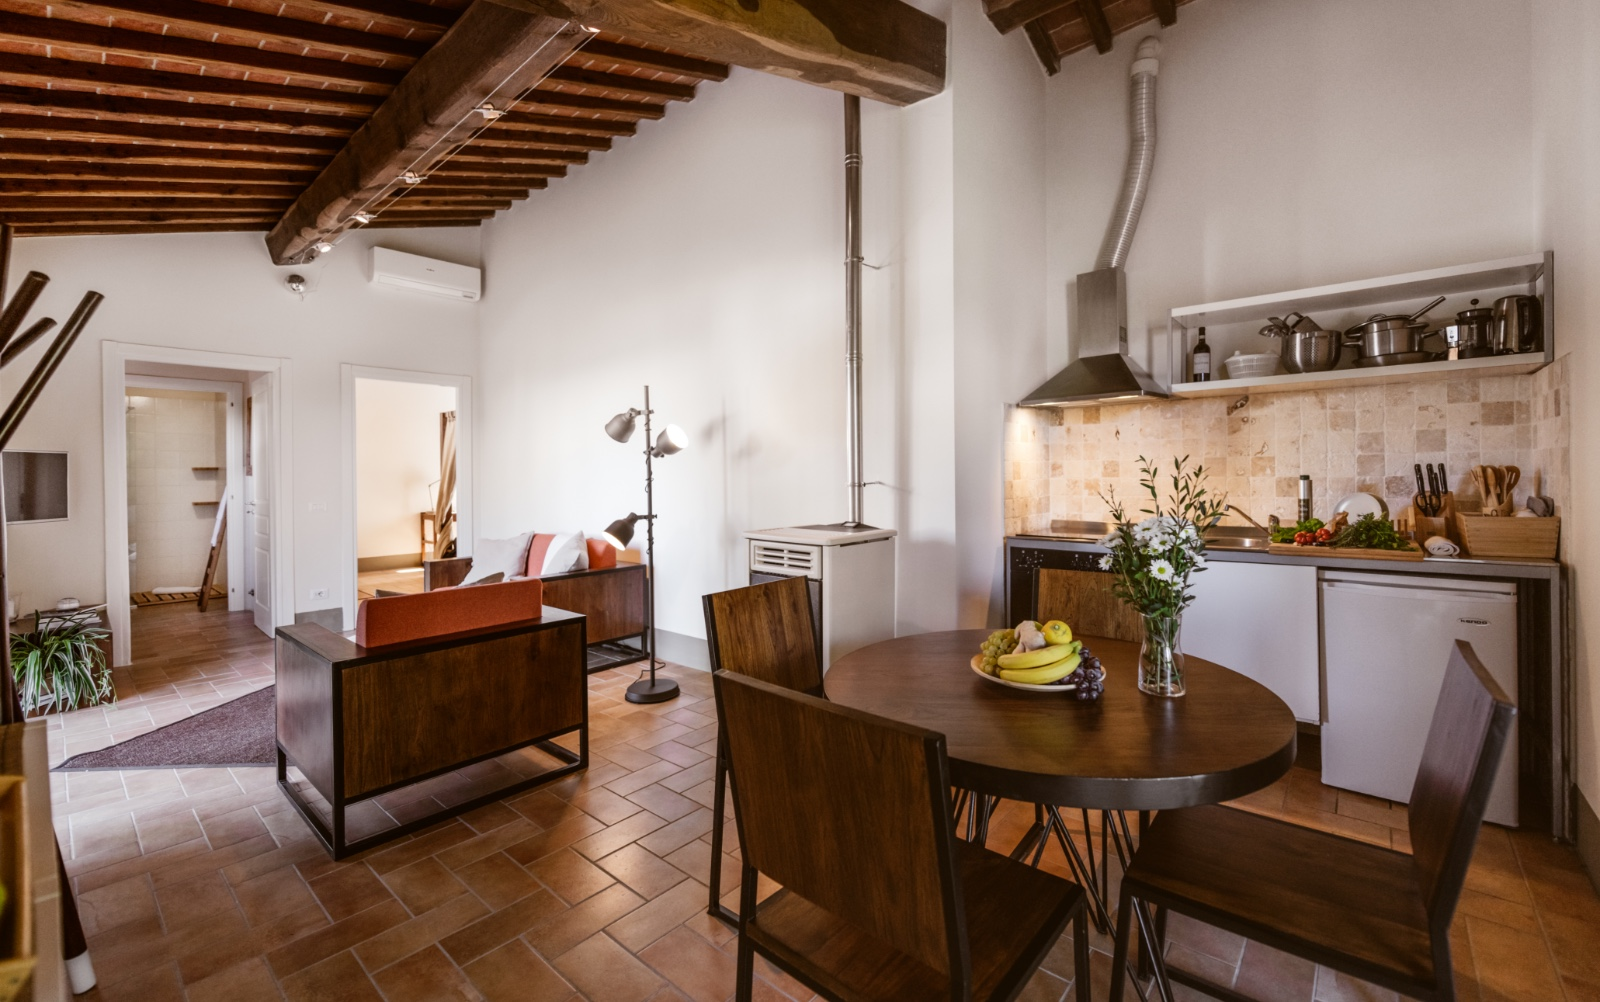 Apartment for family holiday in Tuscany, lunch table